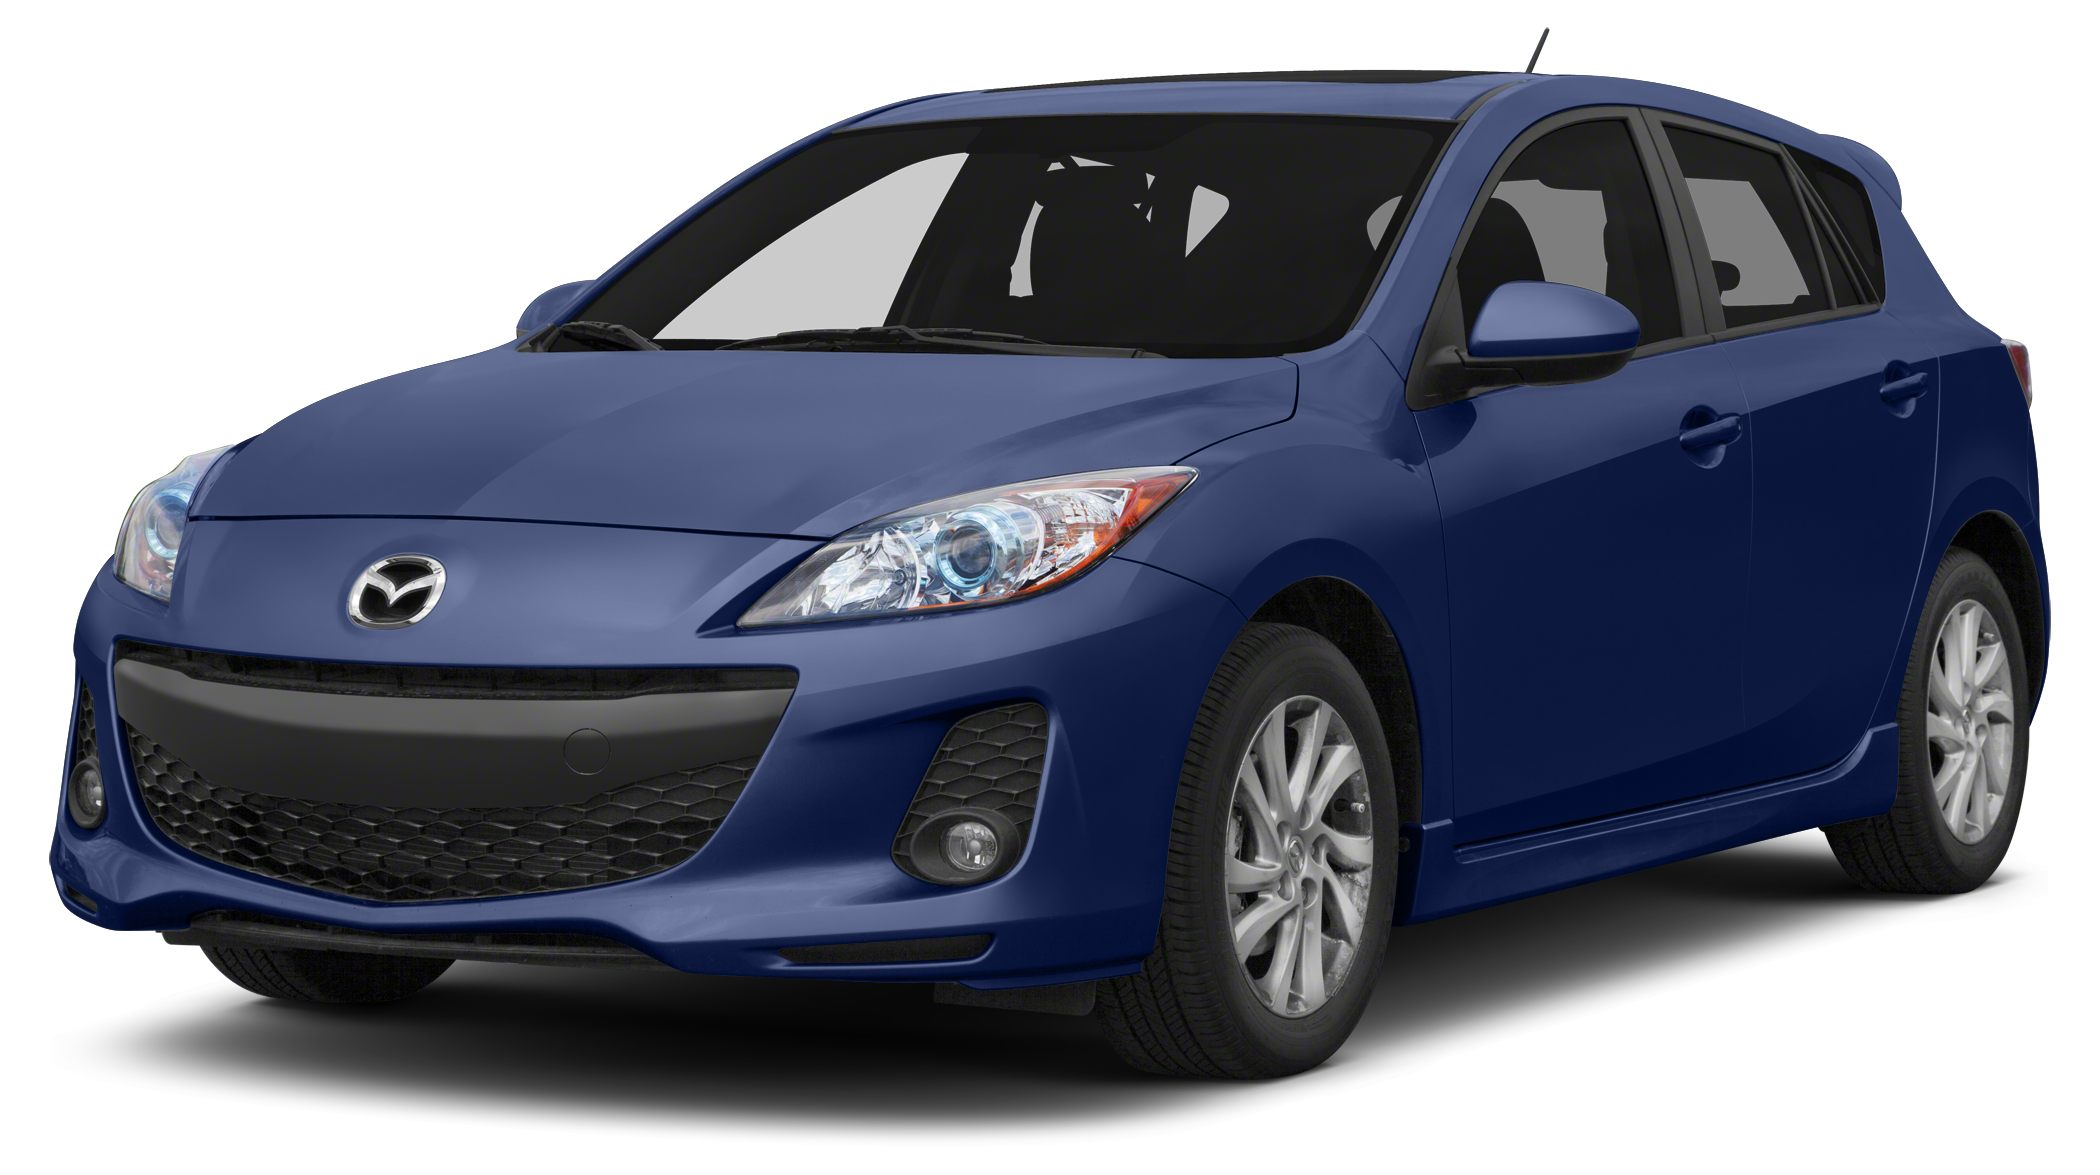 2012 Mazda MAZDA3 i Touring BLACK FRIDAY SALES EVENT HAPPENING NOW New Arrival- 128 Pt Inspected-